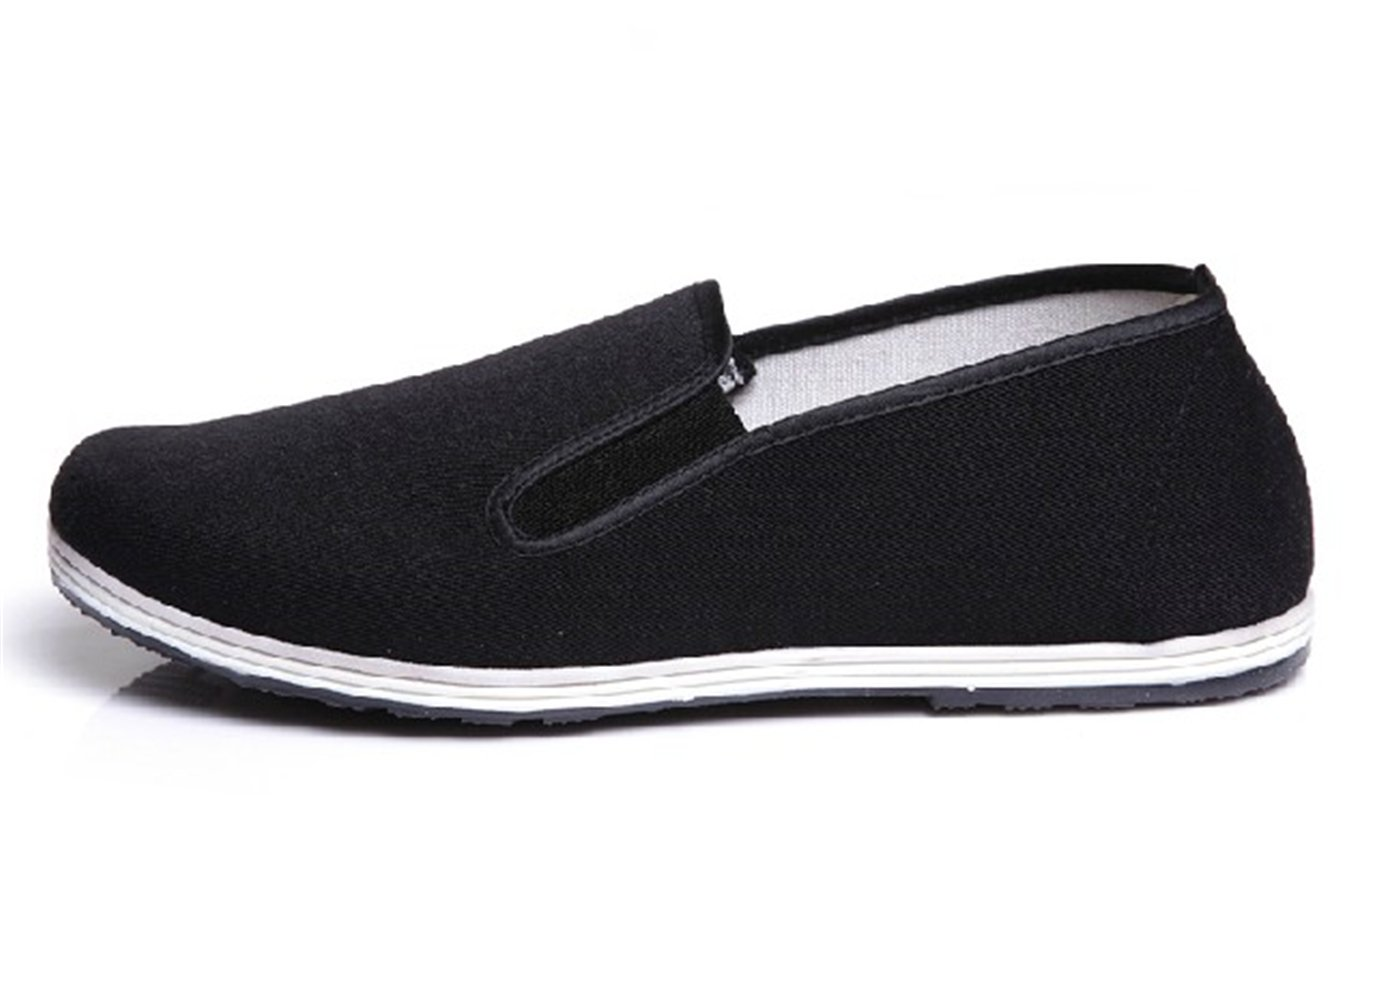 Handmade Winter Chinese Traditional Cloth ShoesExtra Thick Cotton Shoes.(Black)